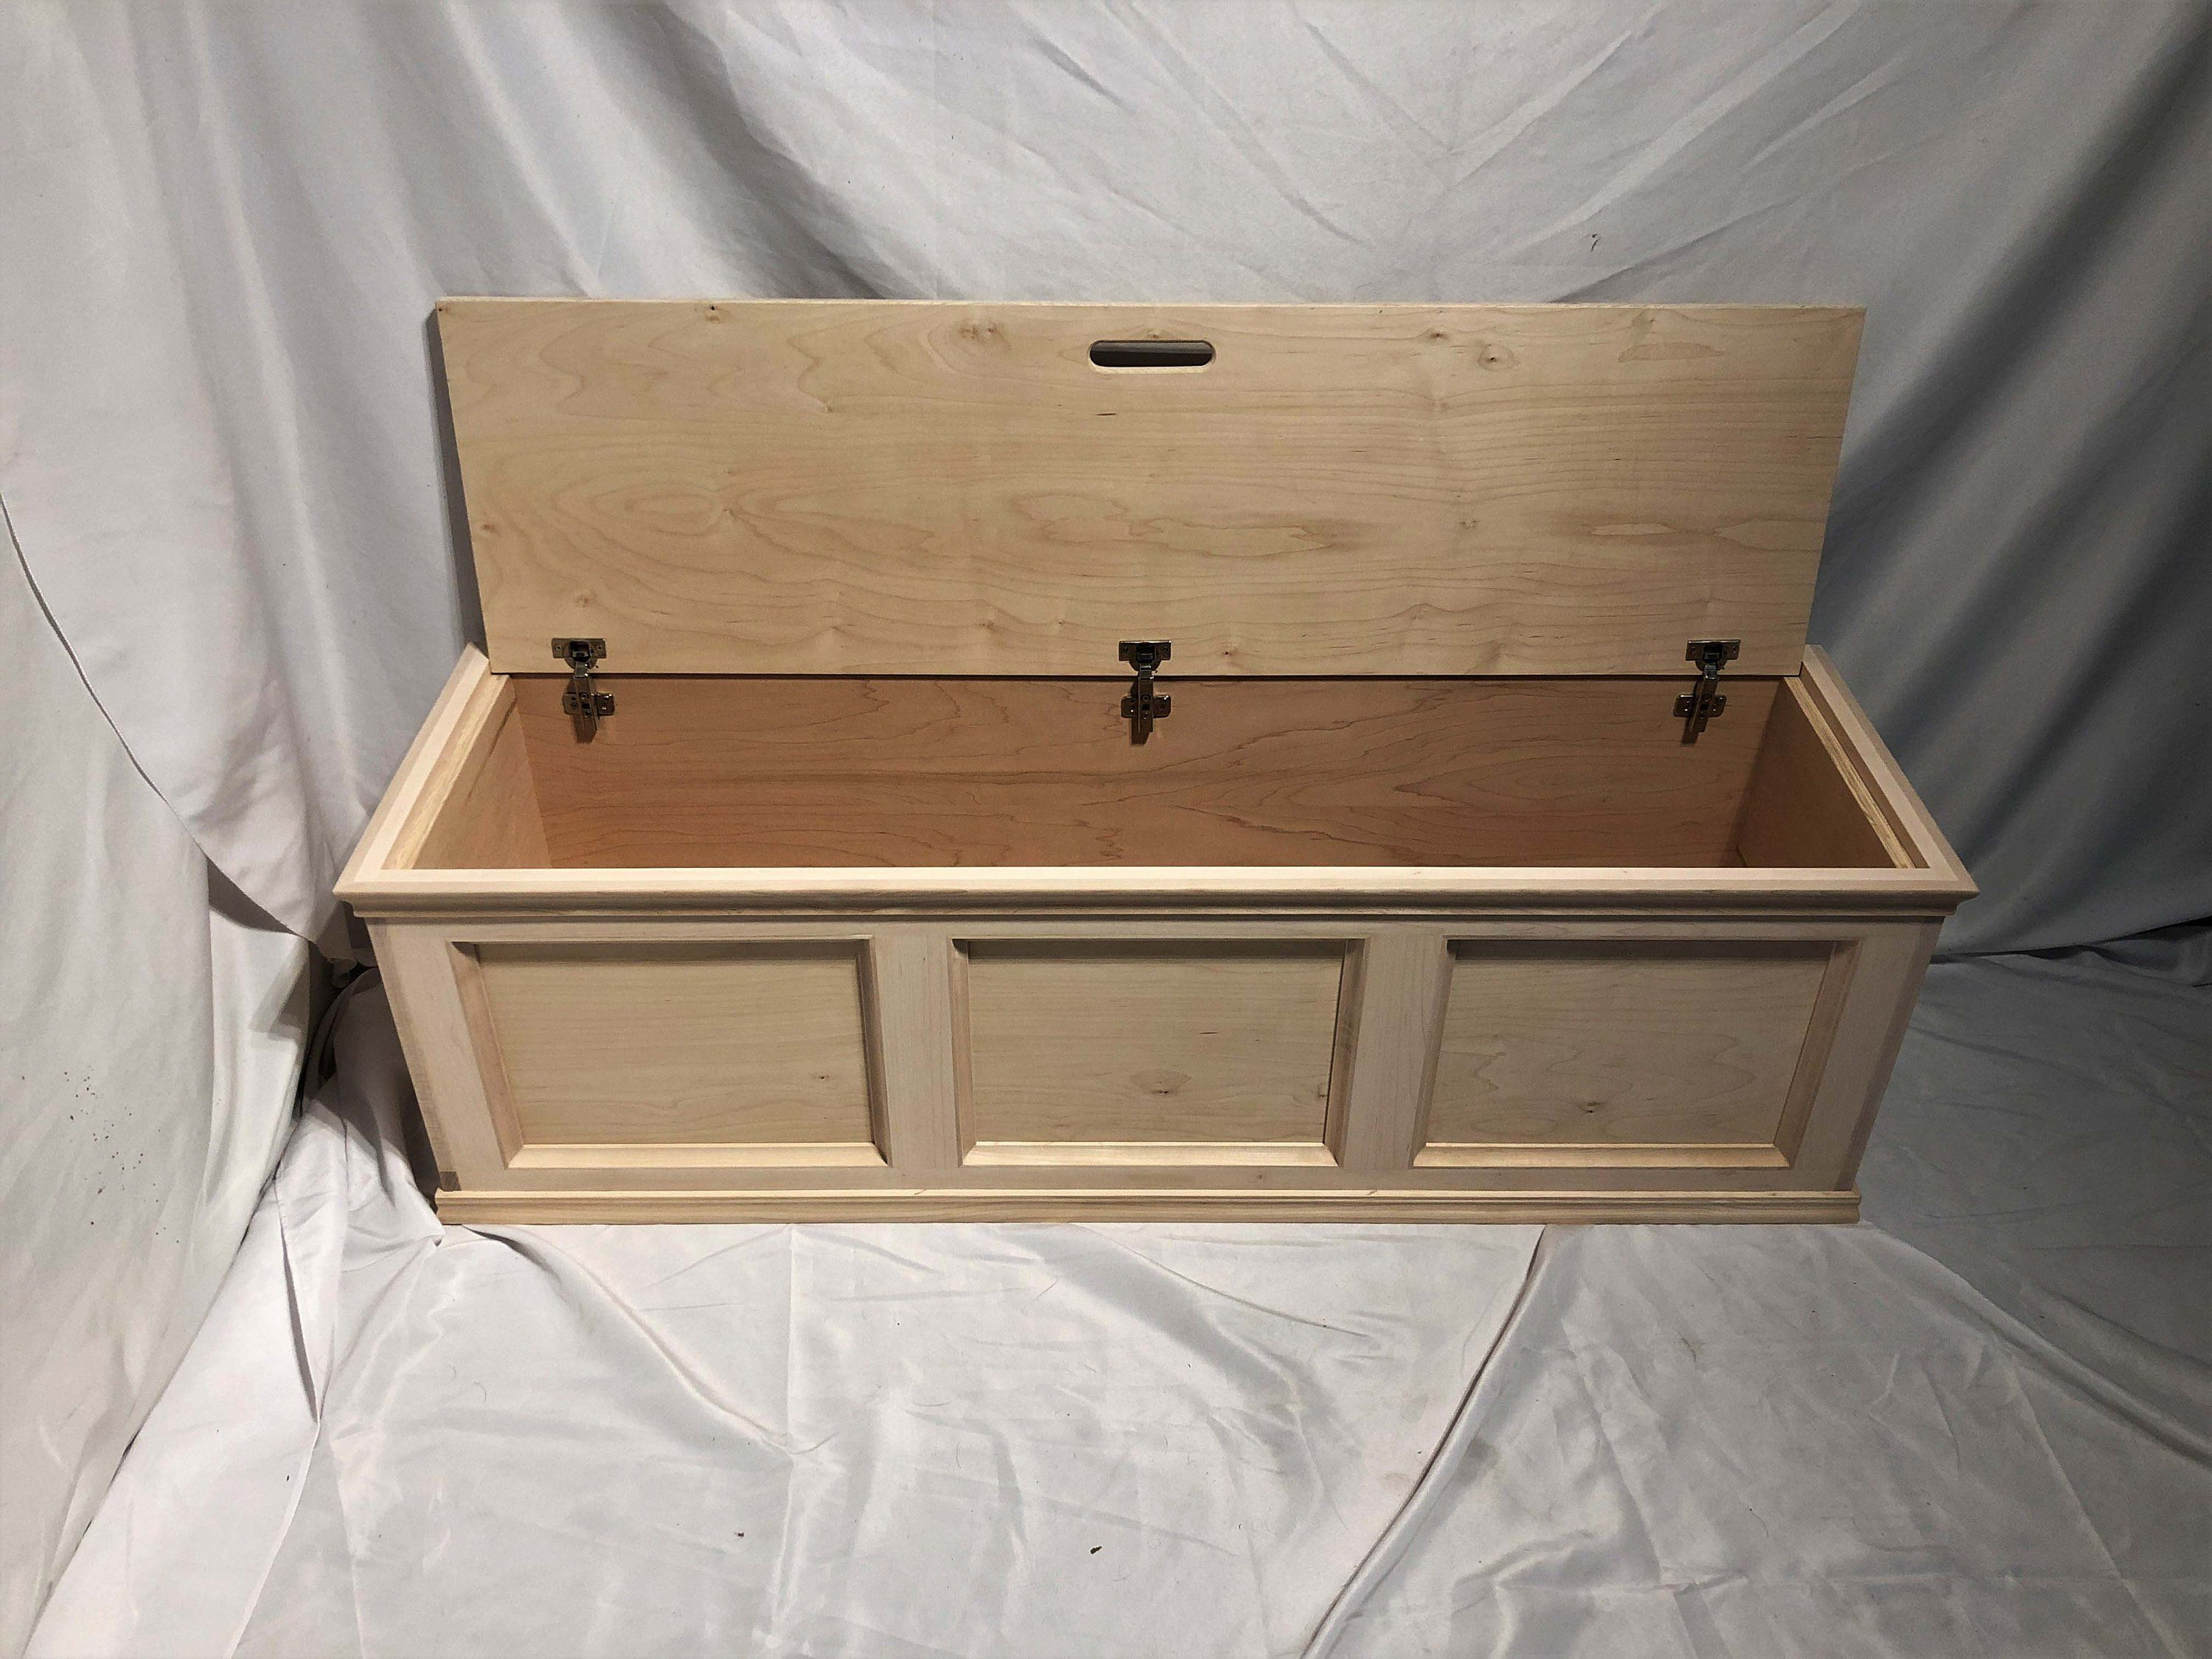 Unfinished Wood Storage Bench Quality Wood Unfinished Furniture Benches And Storage Chests Leesville Unfinished Furniture Wood Storage Bench Bench Furniture